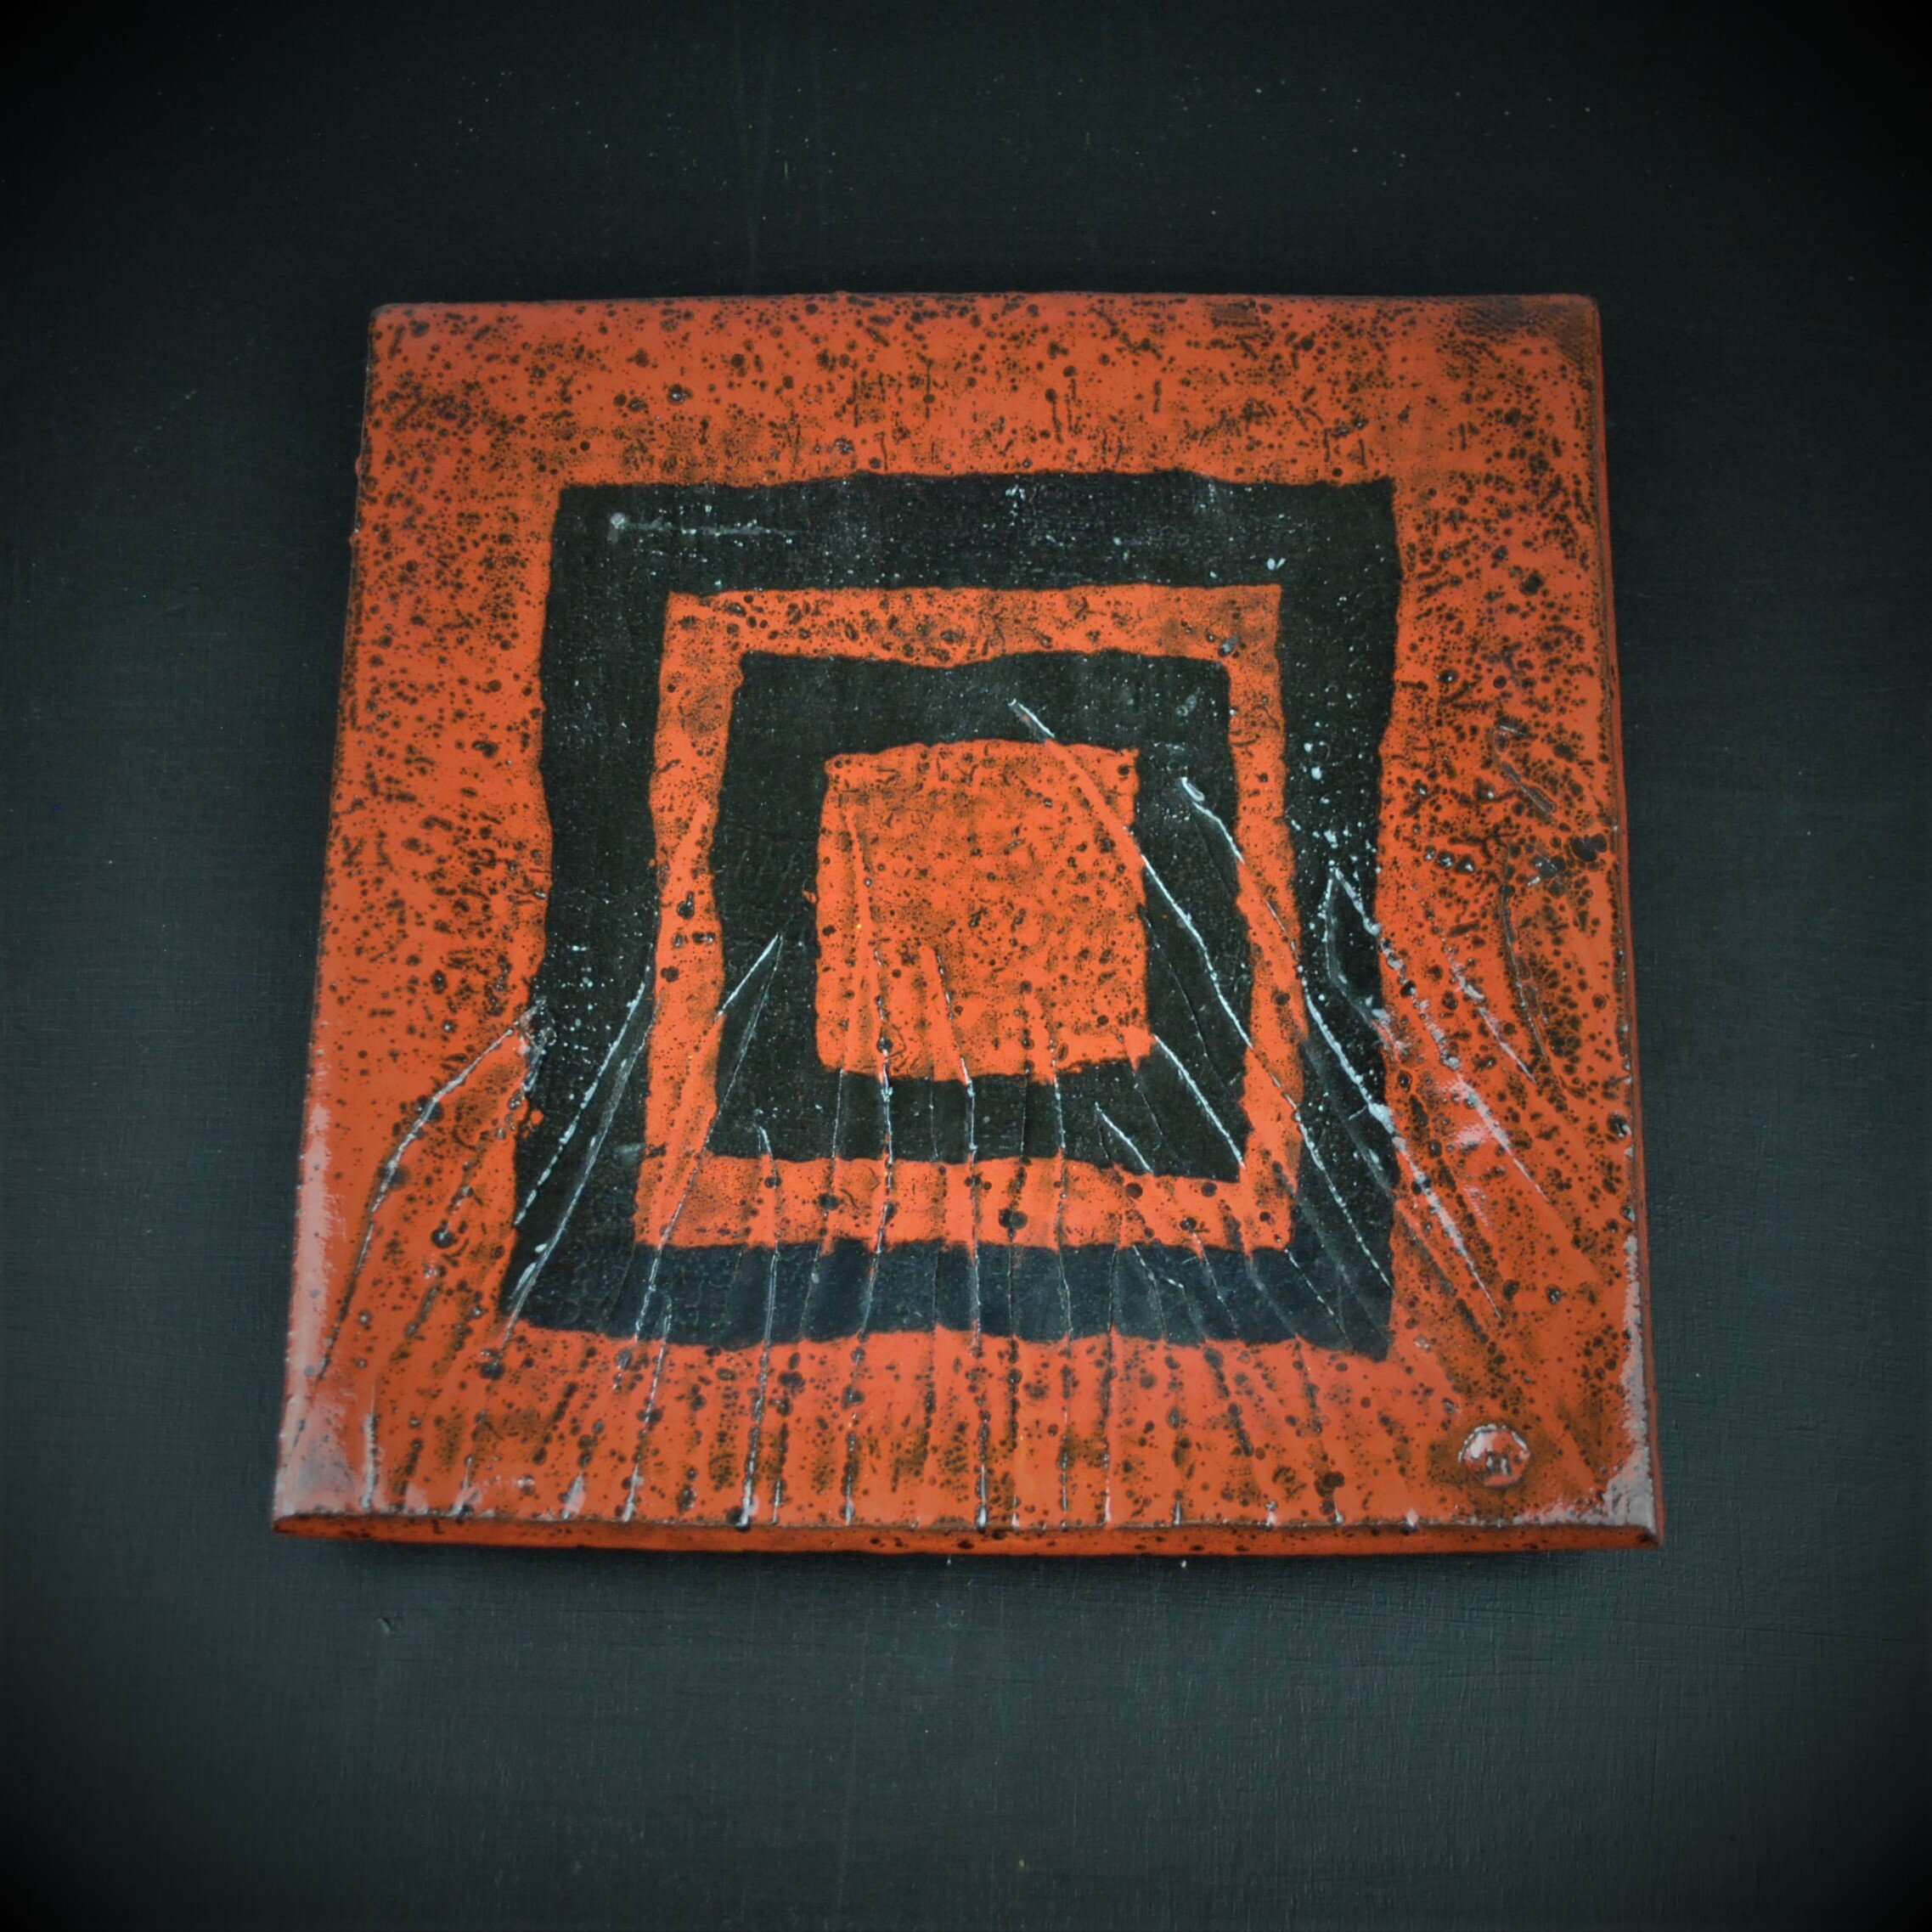 Dave Harper 2018 Slipware plate 25 cm x 25cm. Black squares on red. On black background (Square edit) DSC_6355 (2).JPG